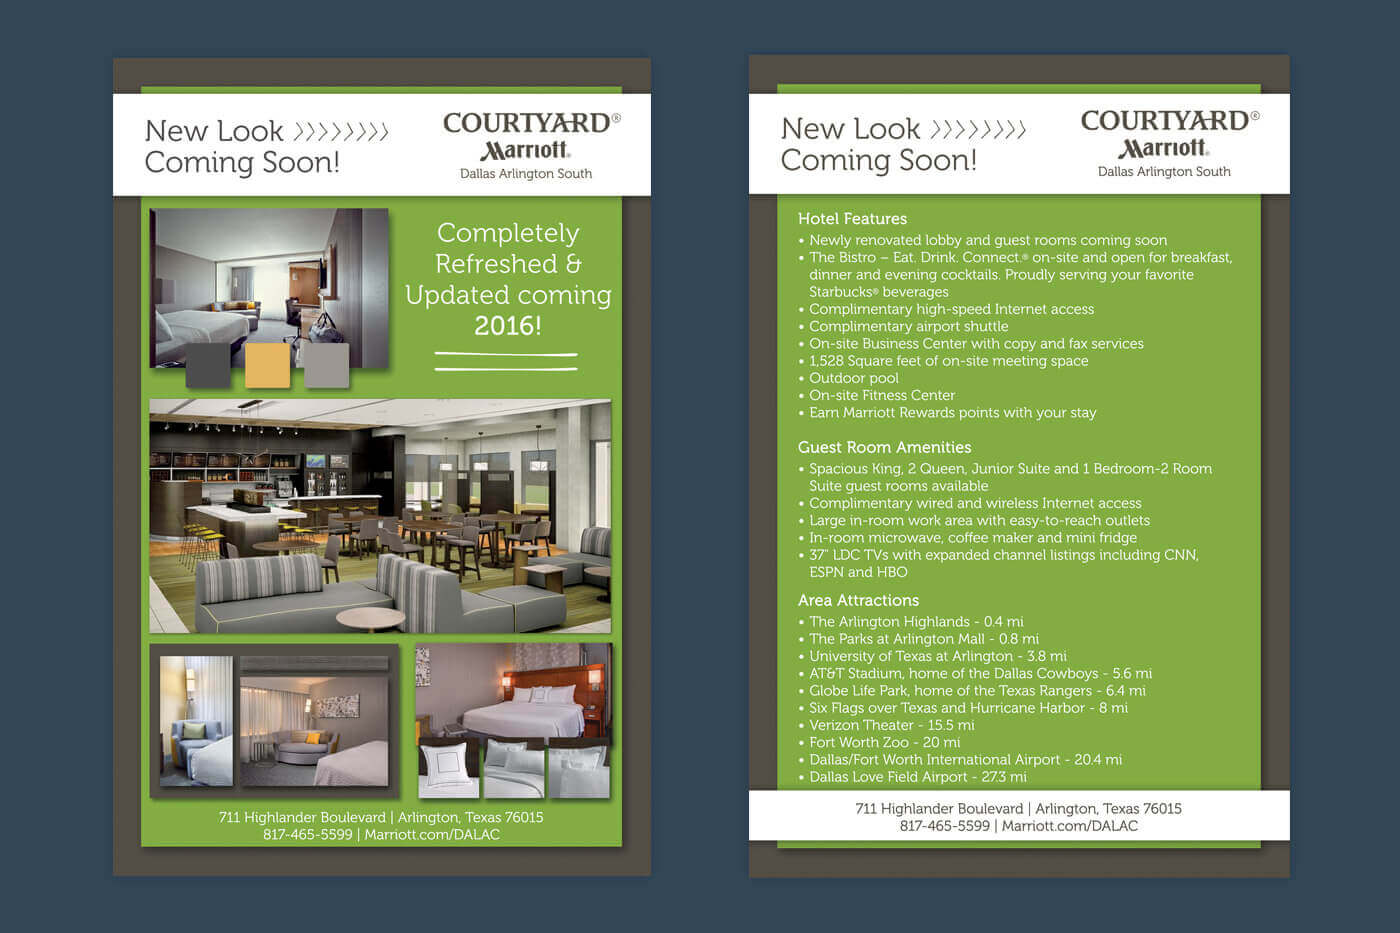 Marketing Collateral - Courtyard Arlington Flyer